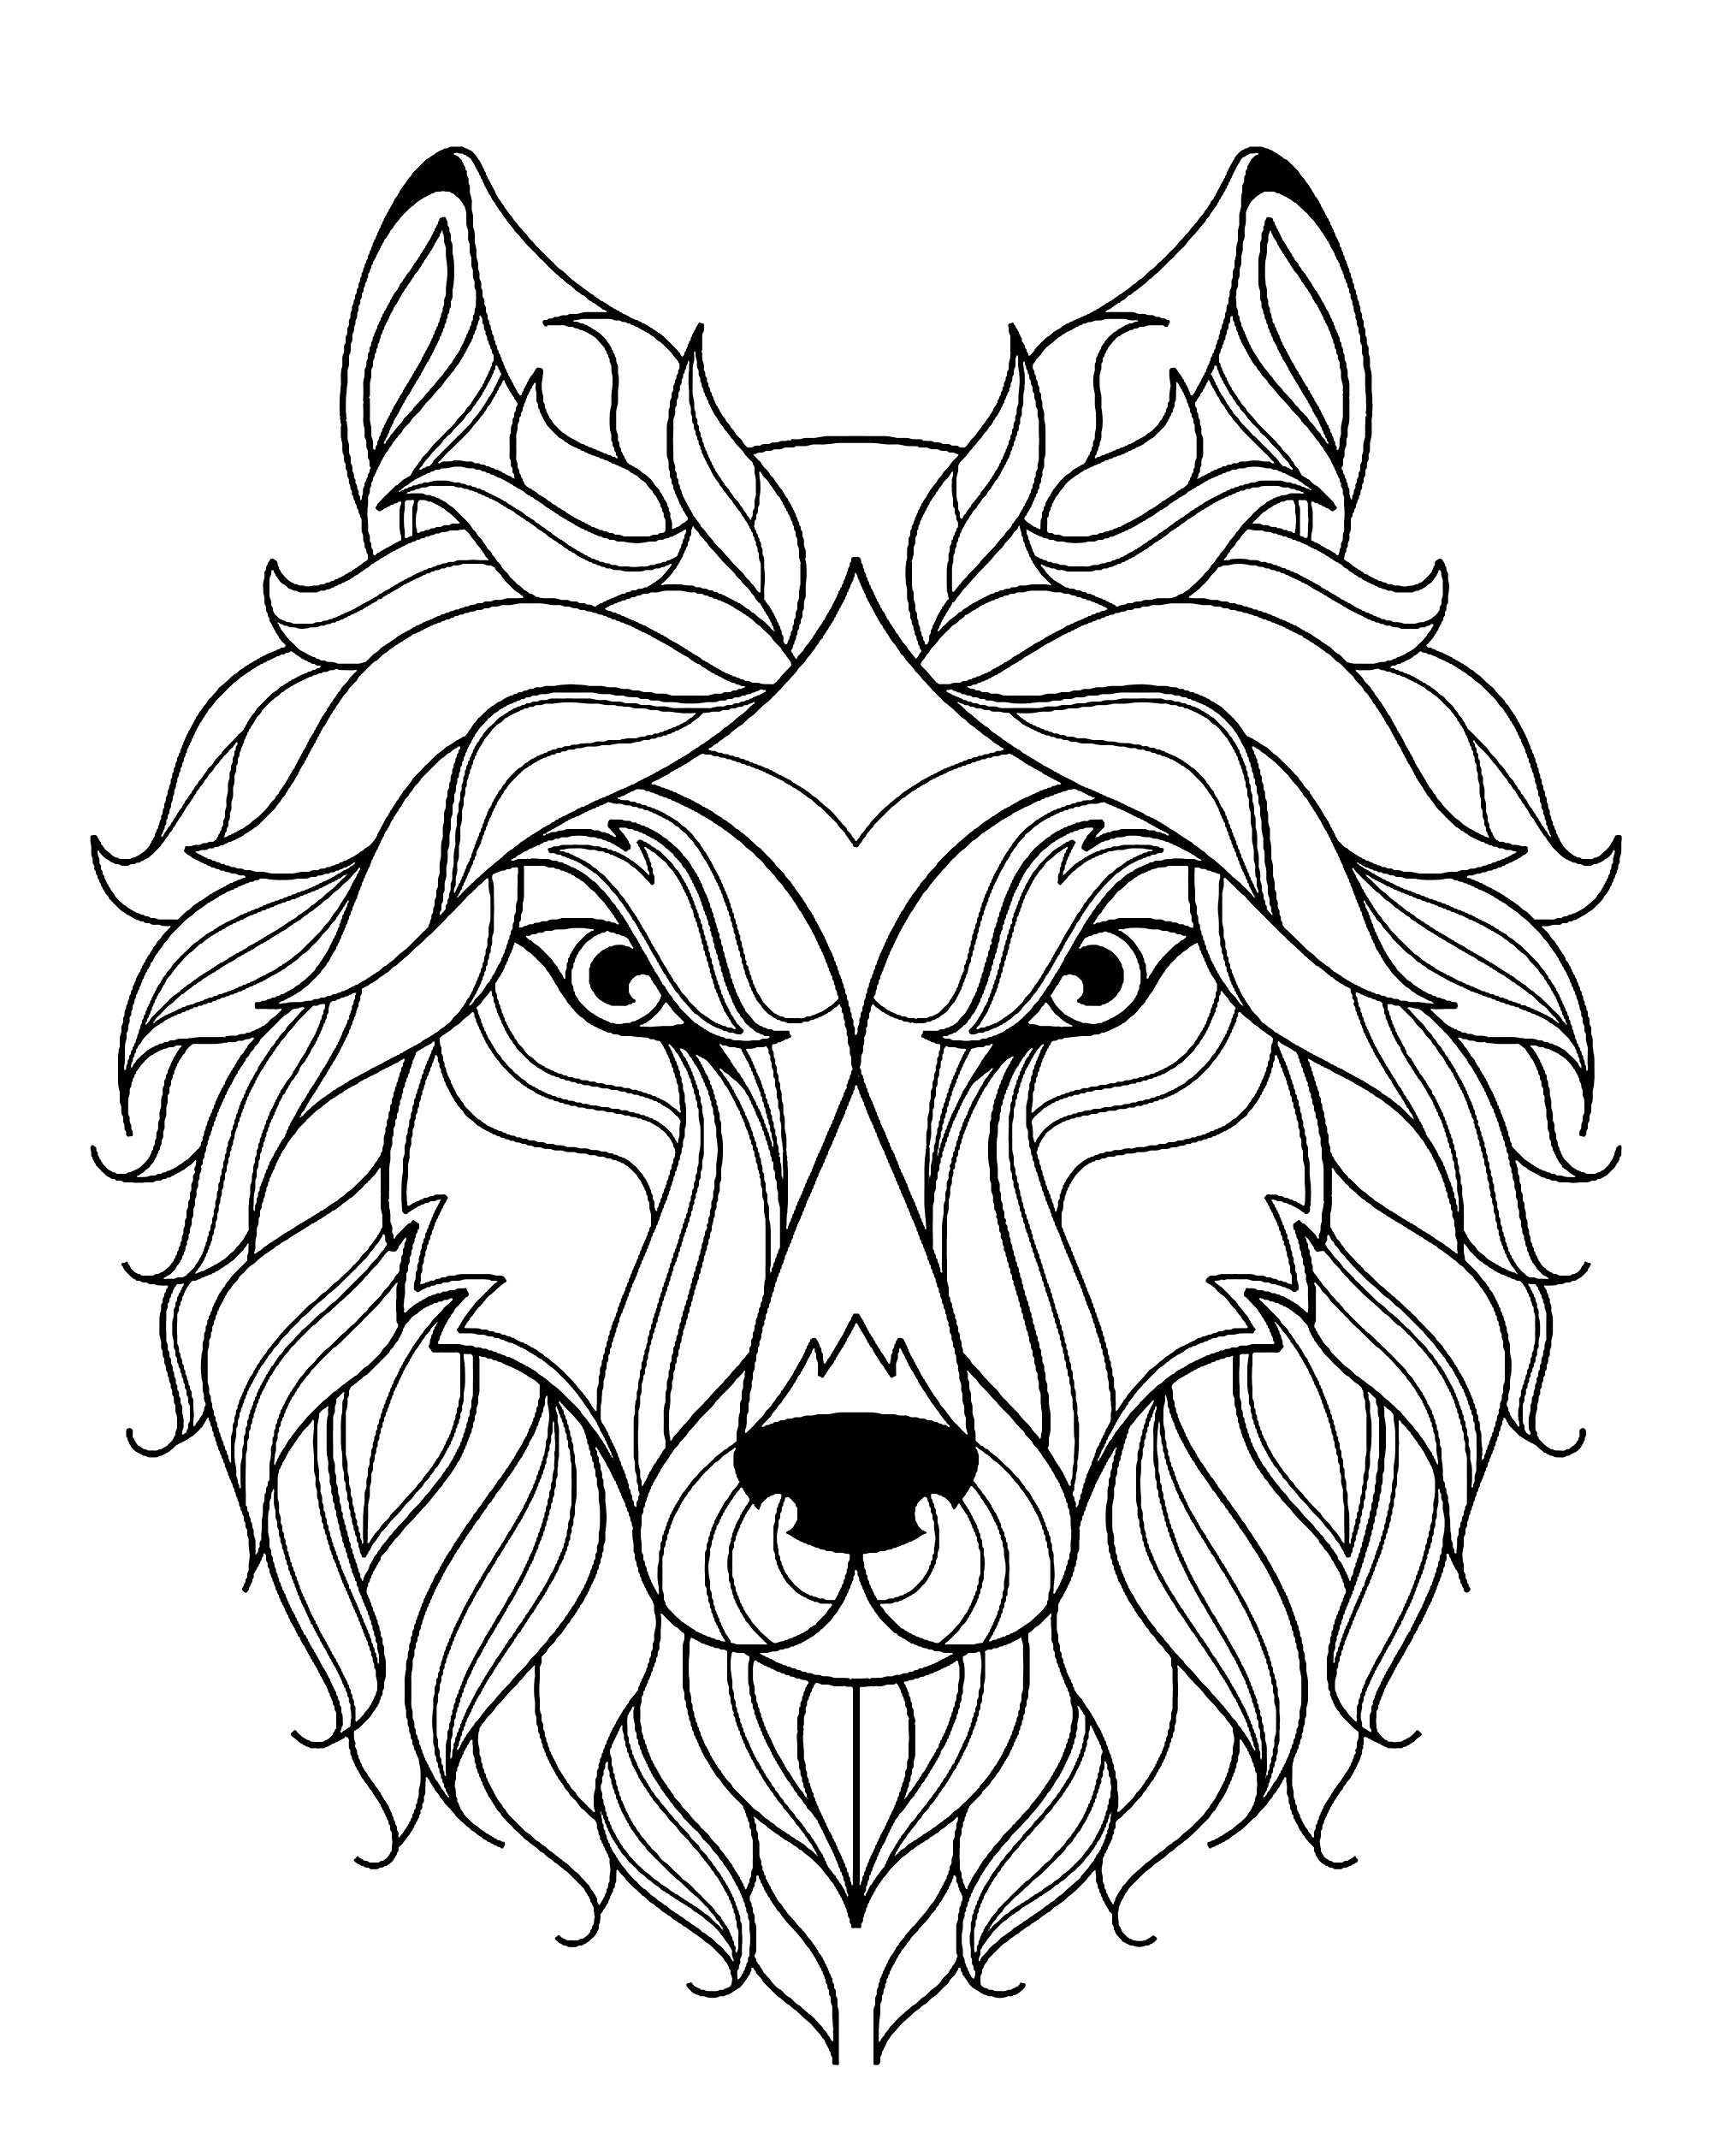 Tete de loup simple loups coloriages difficiles pour adultes - Dessin de loup simple ...